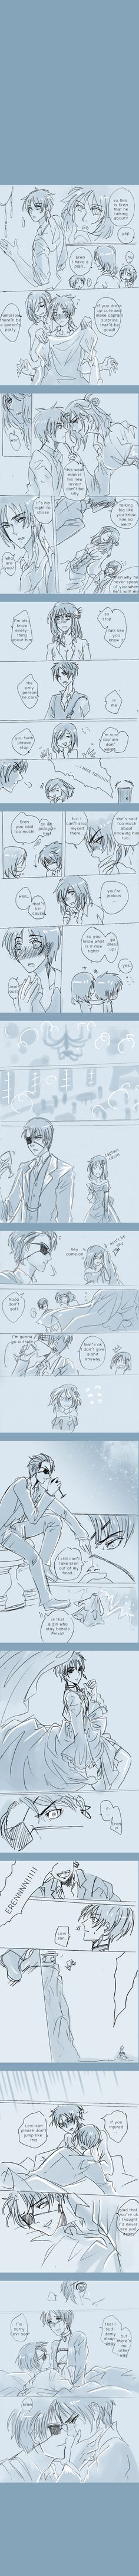 ENG DRAFT: Pirate!Levi x Mermaid!Eren part17 by illuscarymono.deviantart.com on @DeviantArt